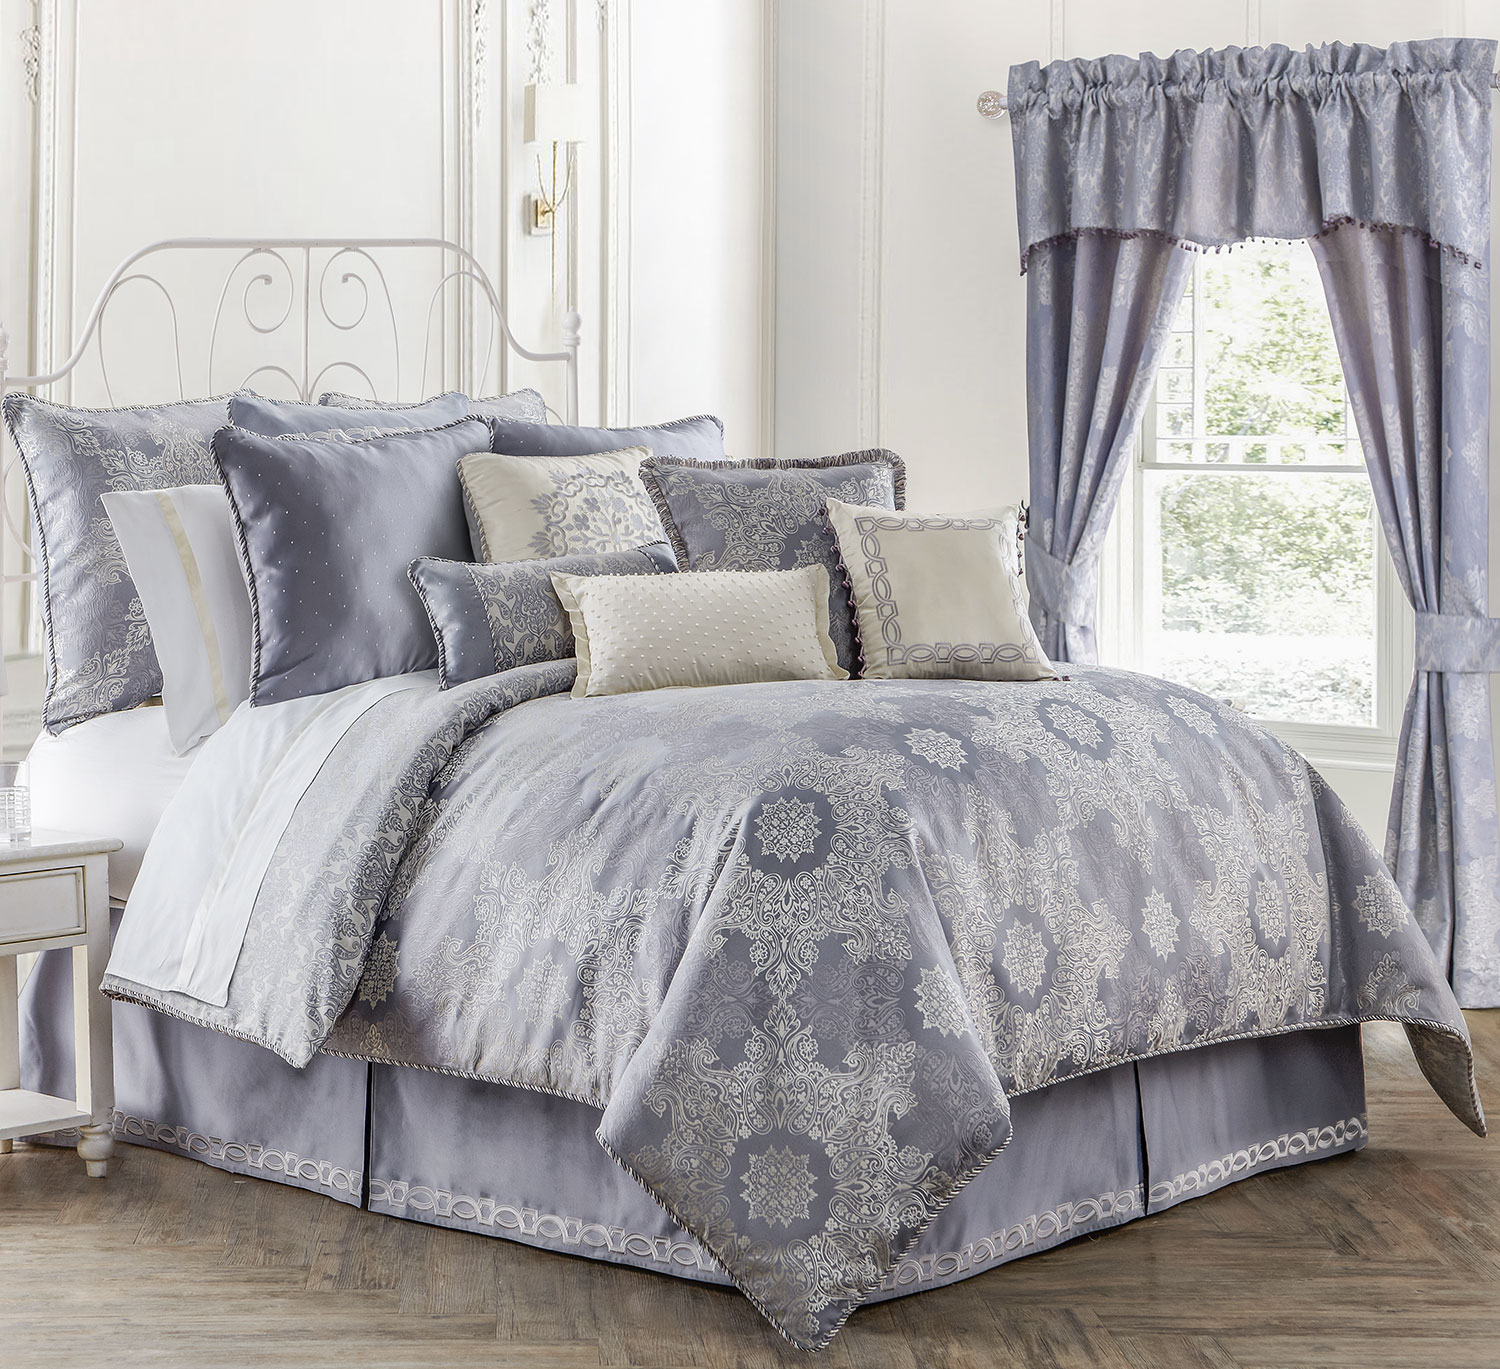 Veranda Thistle By Waterford Luxury Bedding